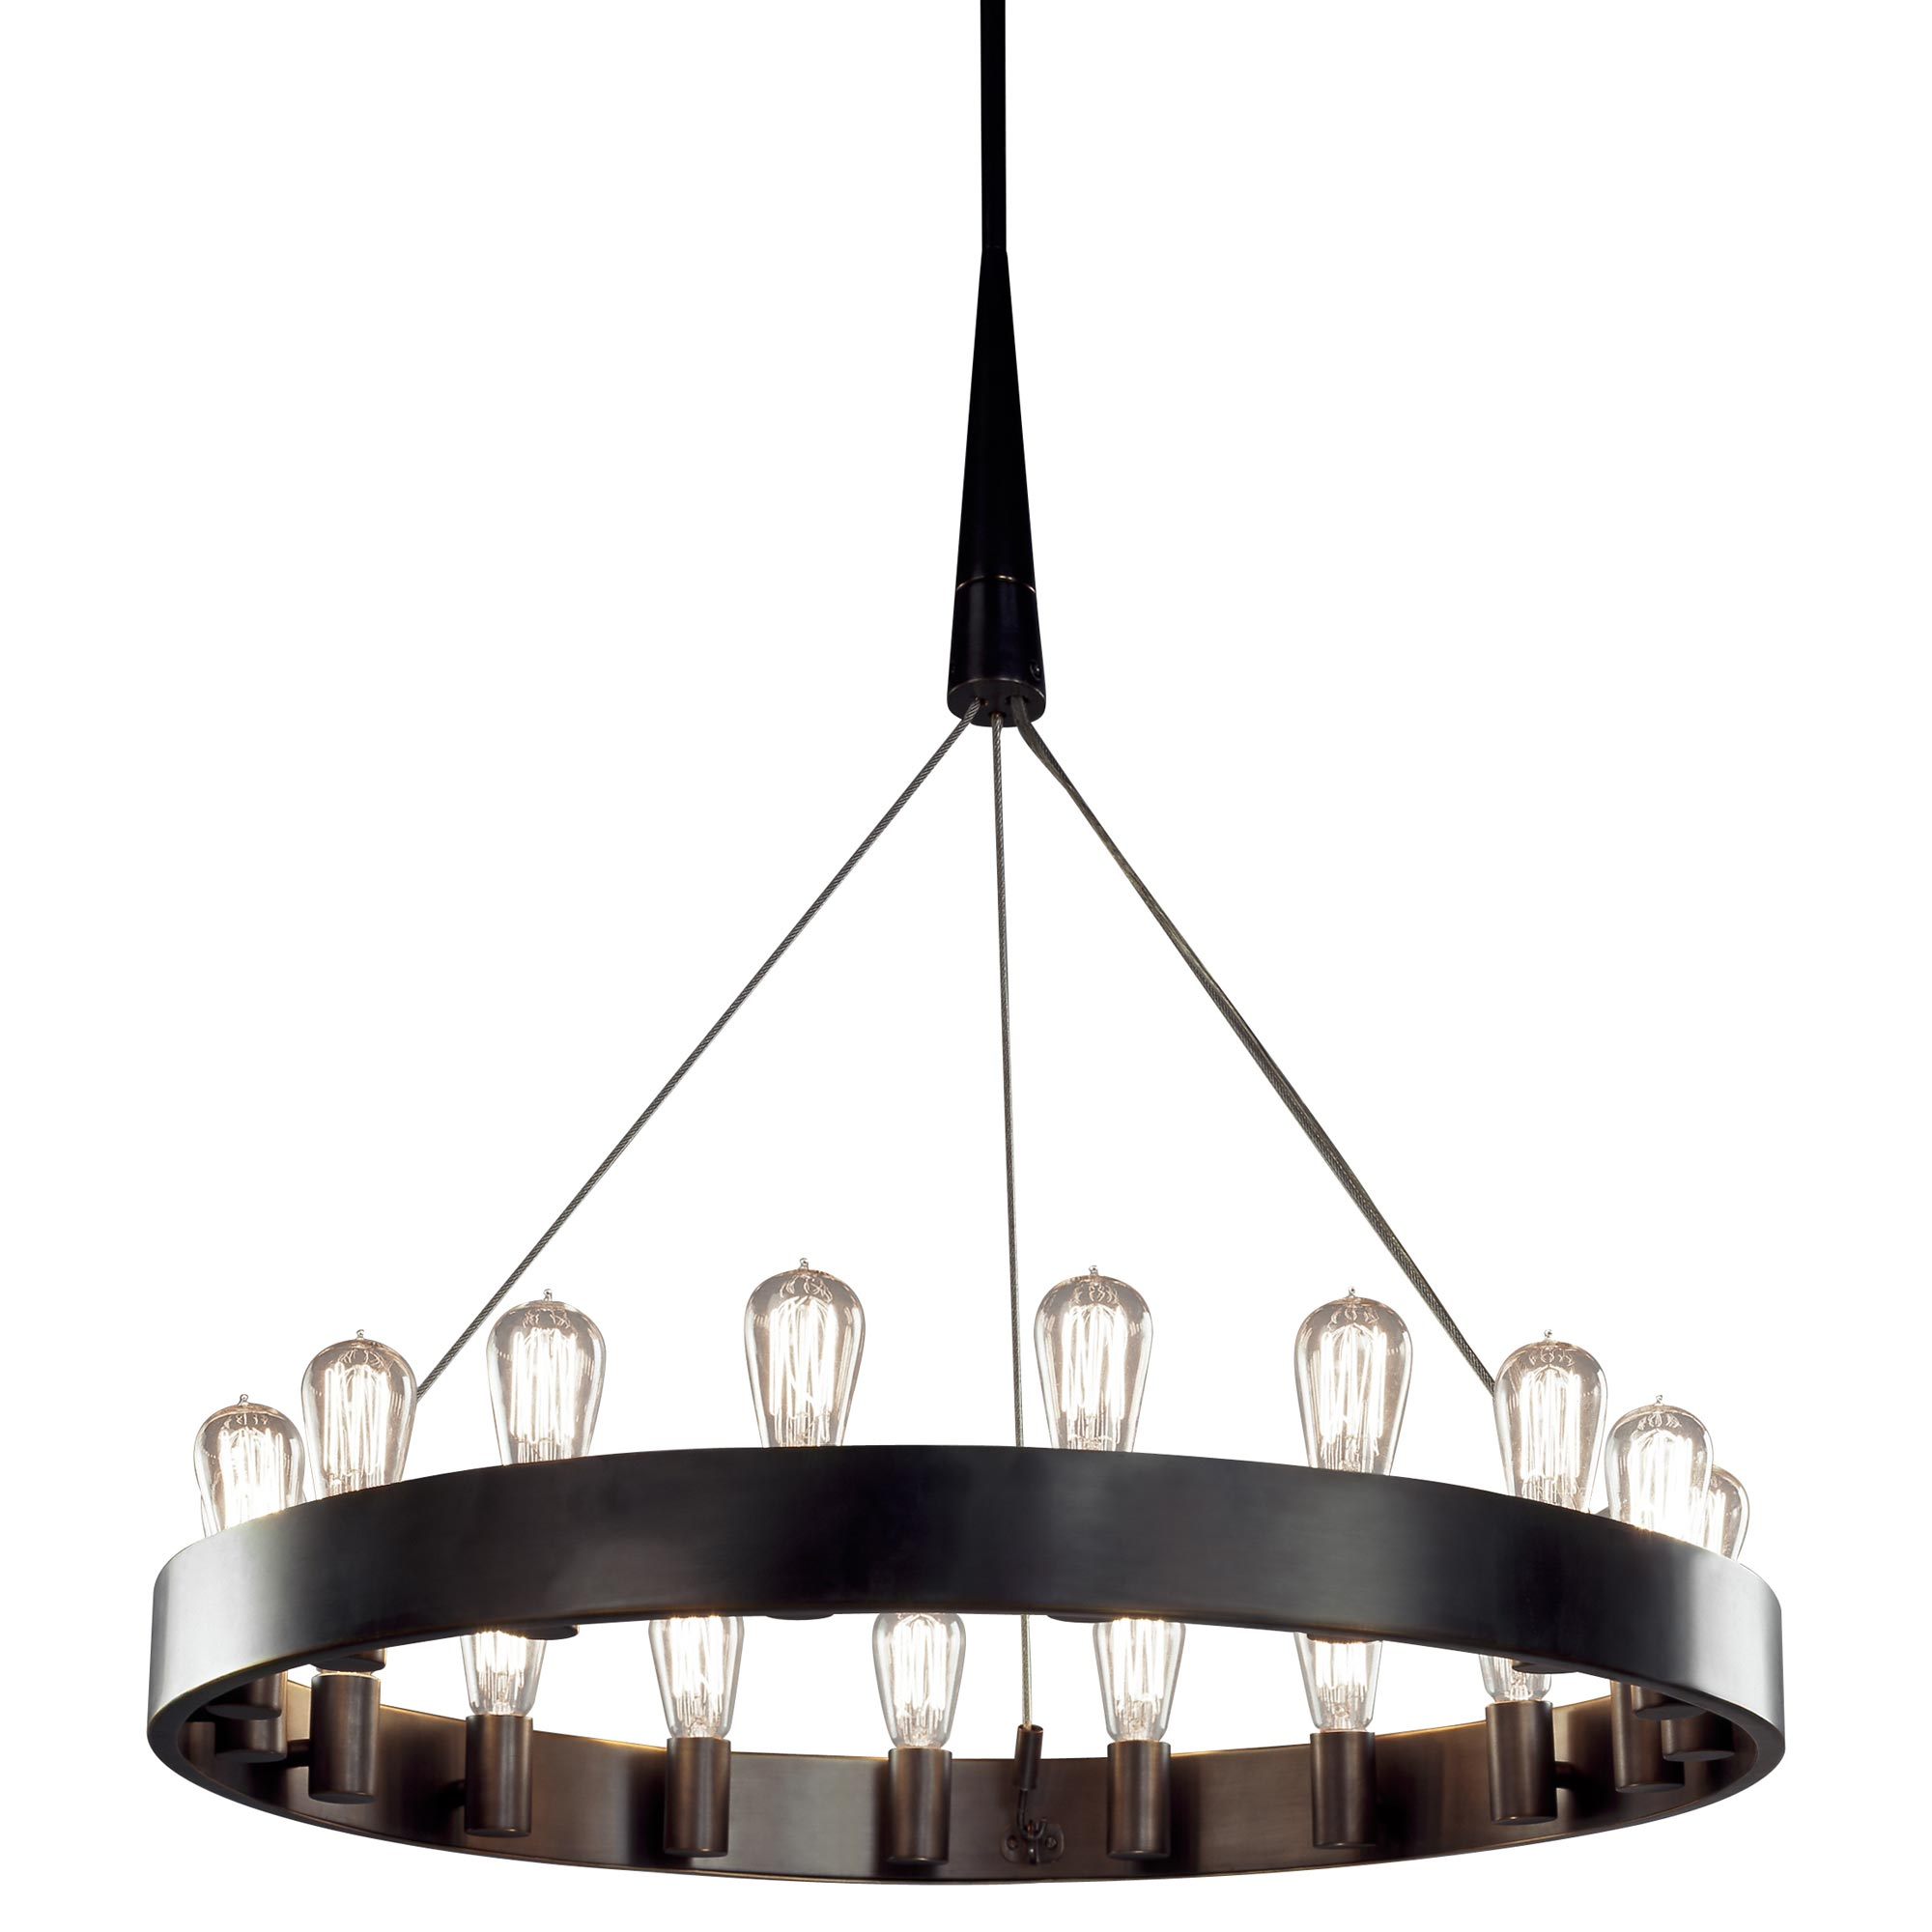 Chandelier by Robert Abbey – Candelaria Chandelier